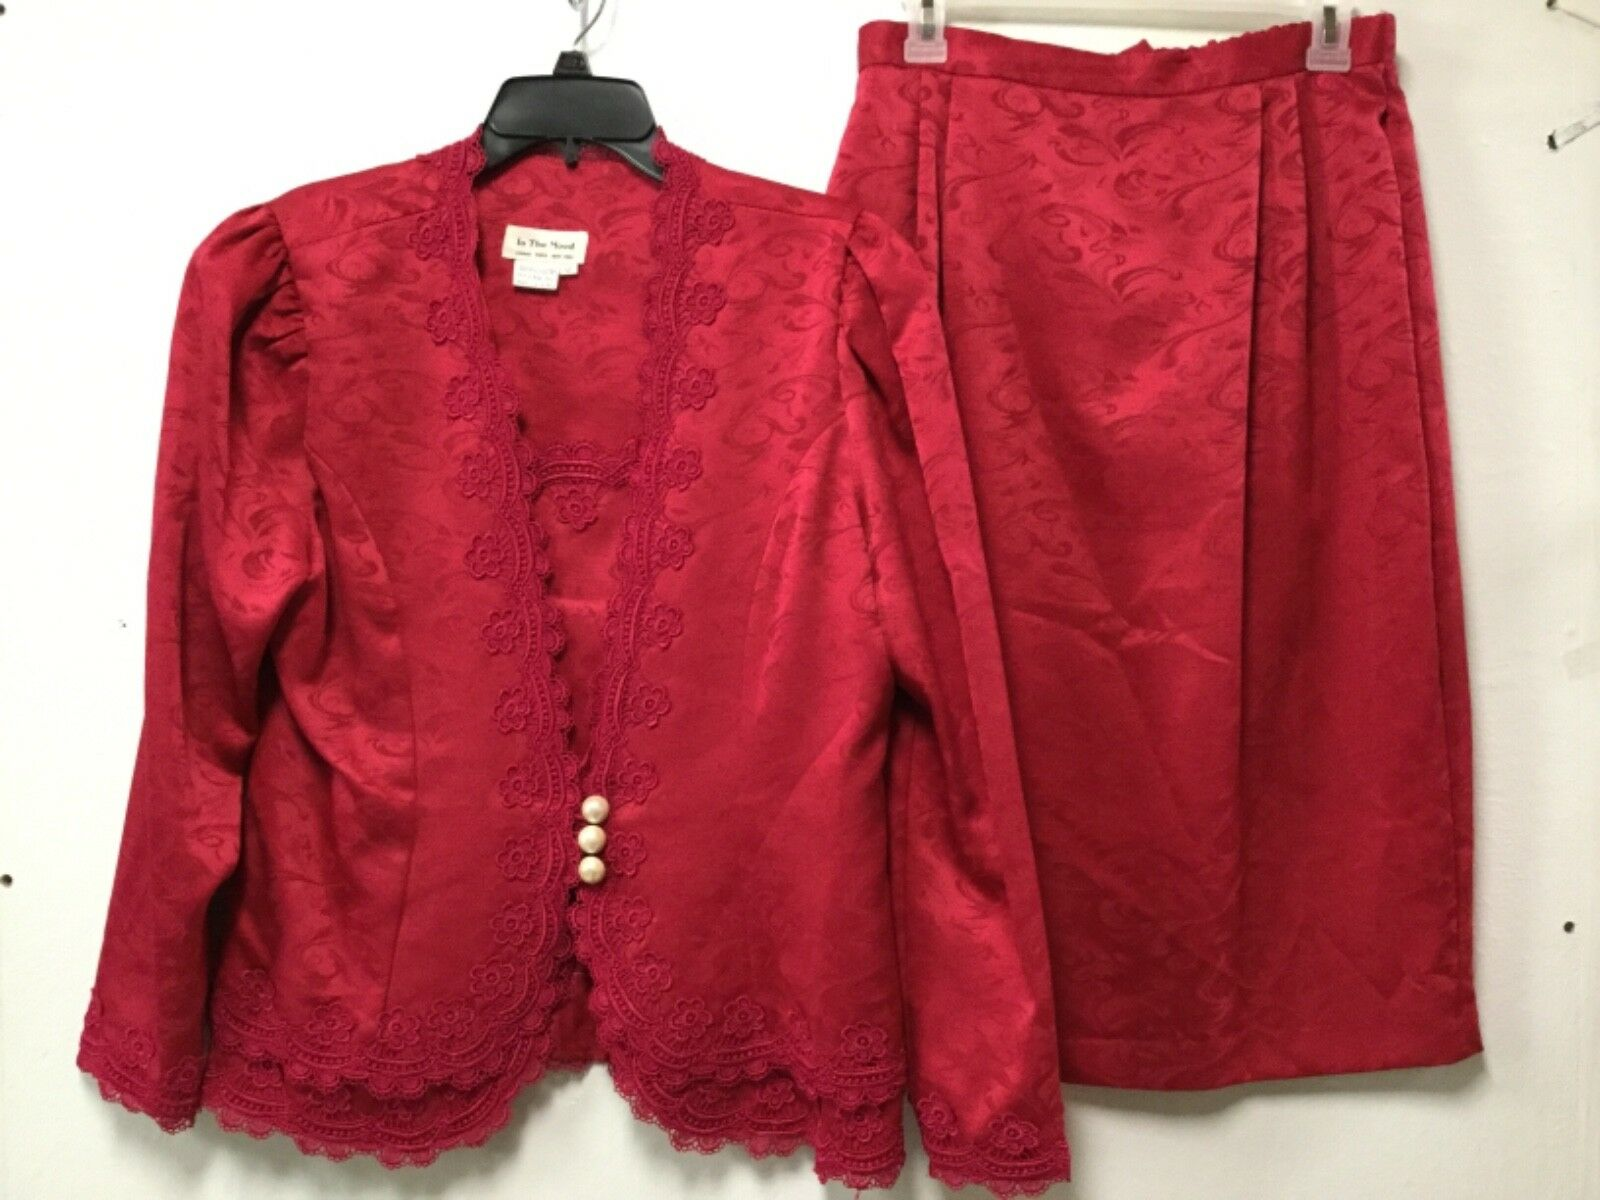 Womens Sexy Two Piece Formal Skirt Suit Size 12 Bright Red In The Mood 189